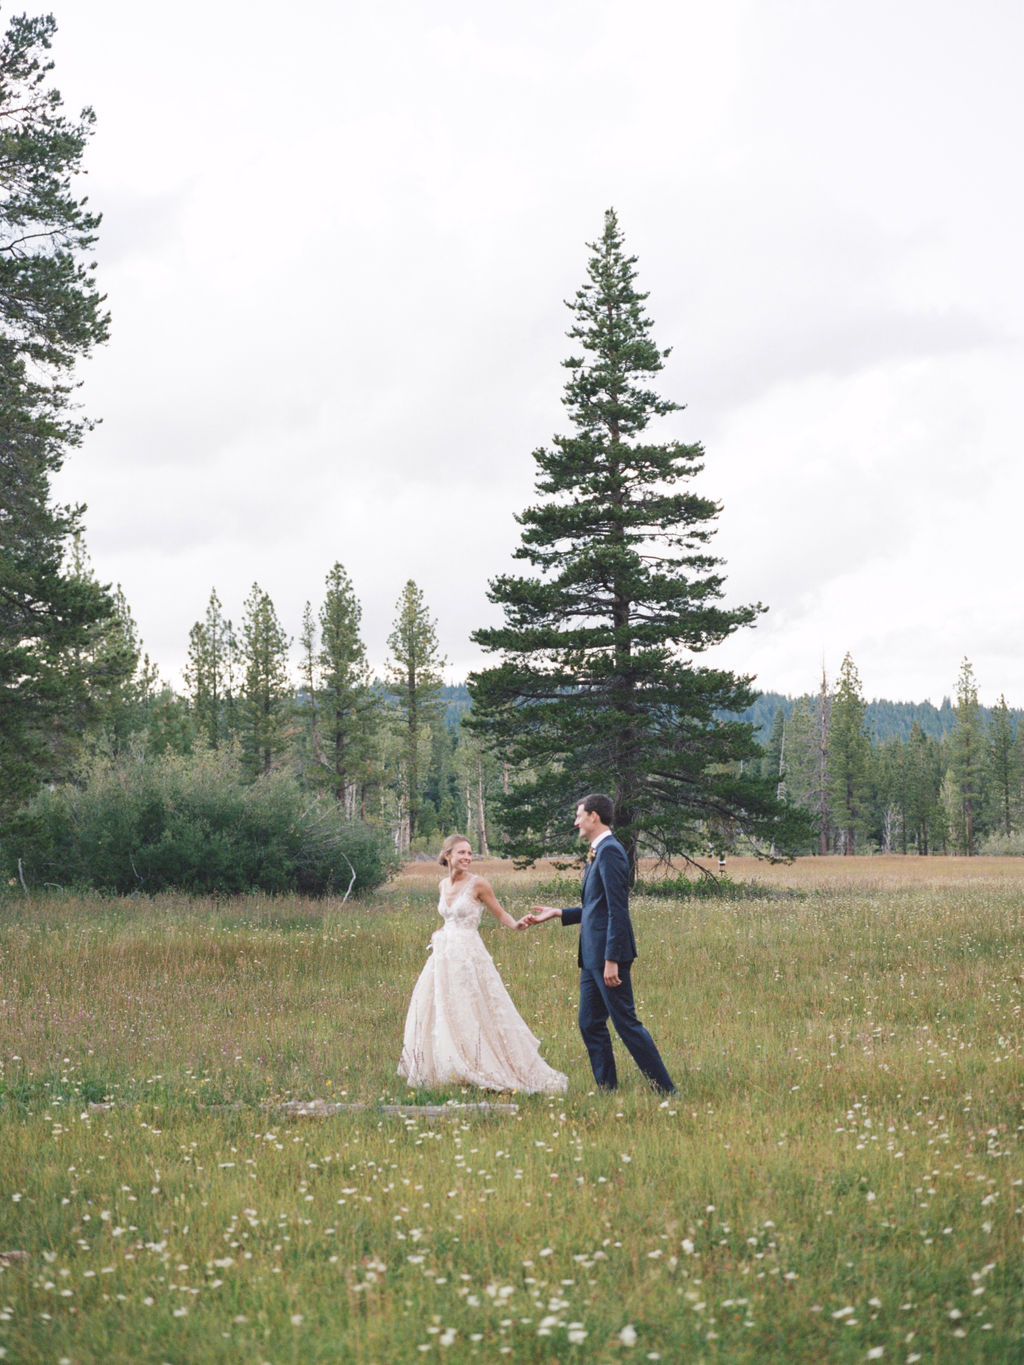 bride and groom holding hands and walking in meadow